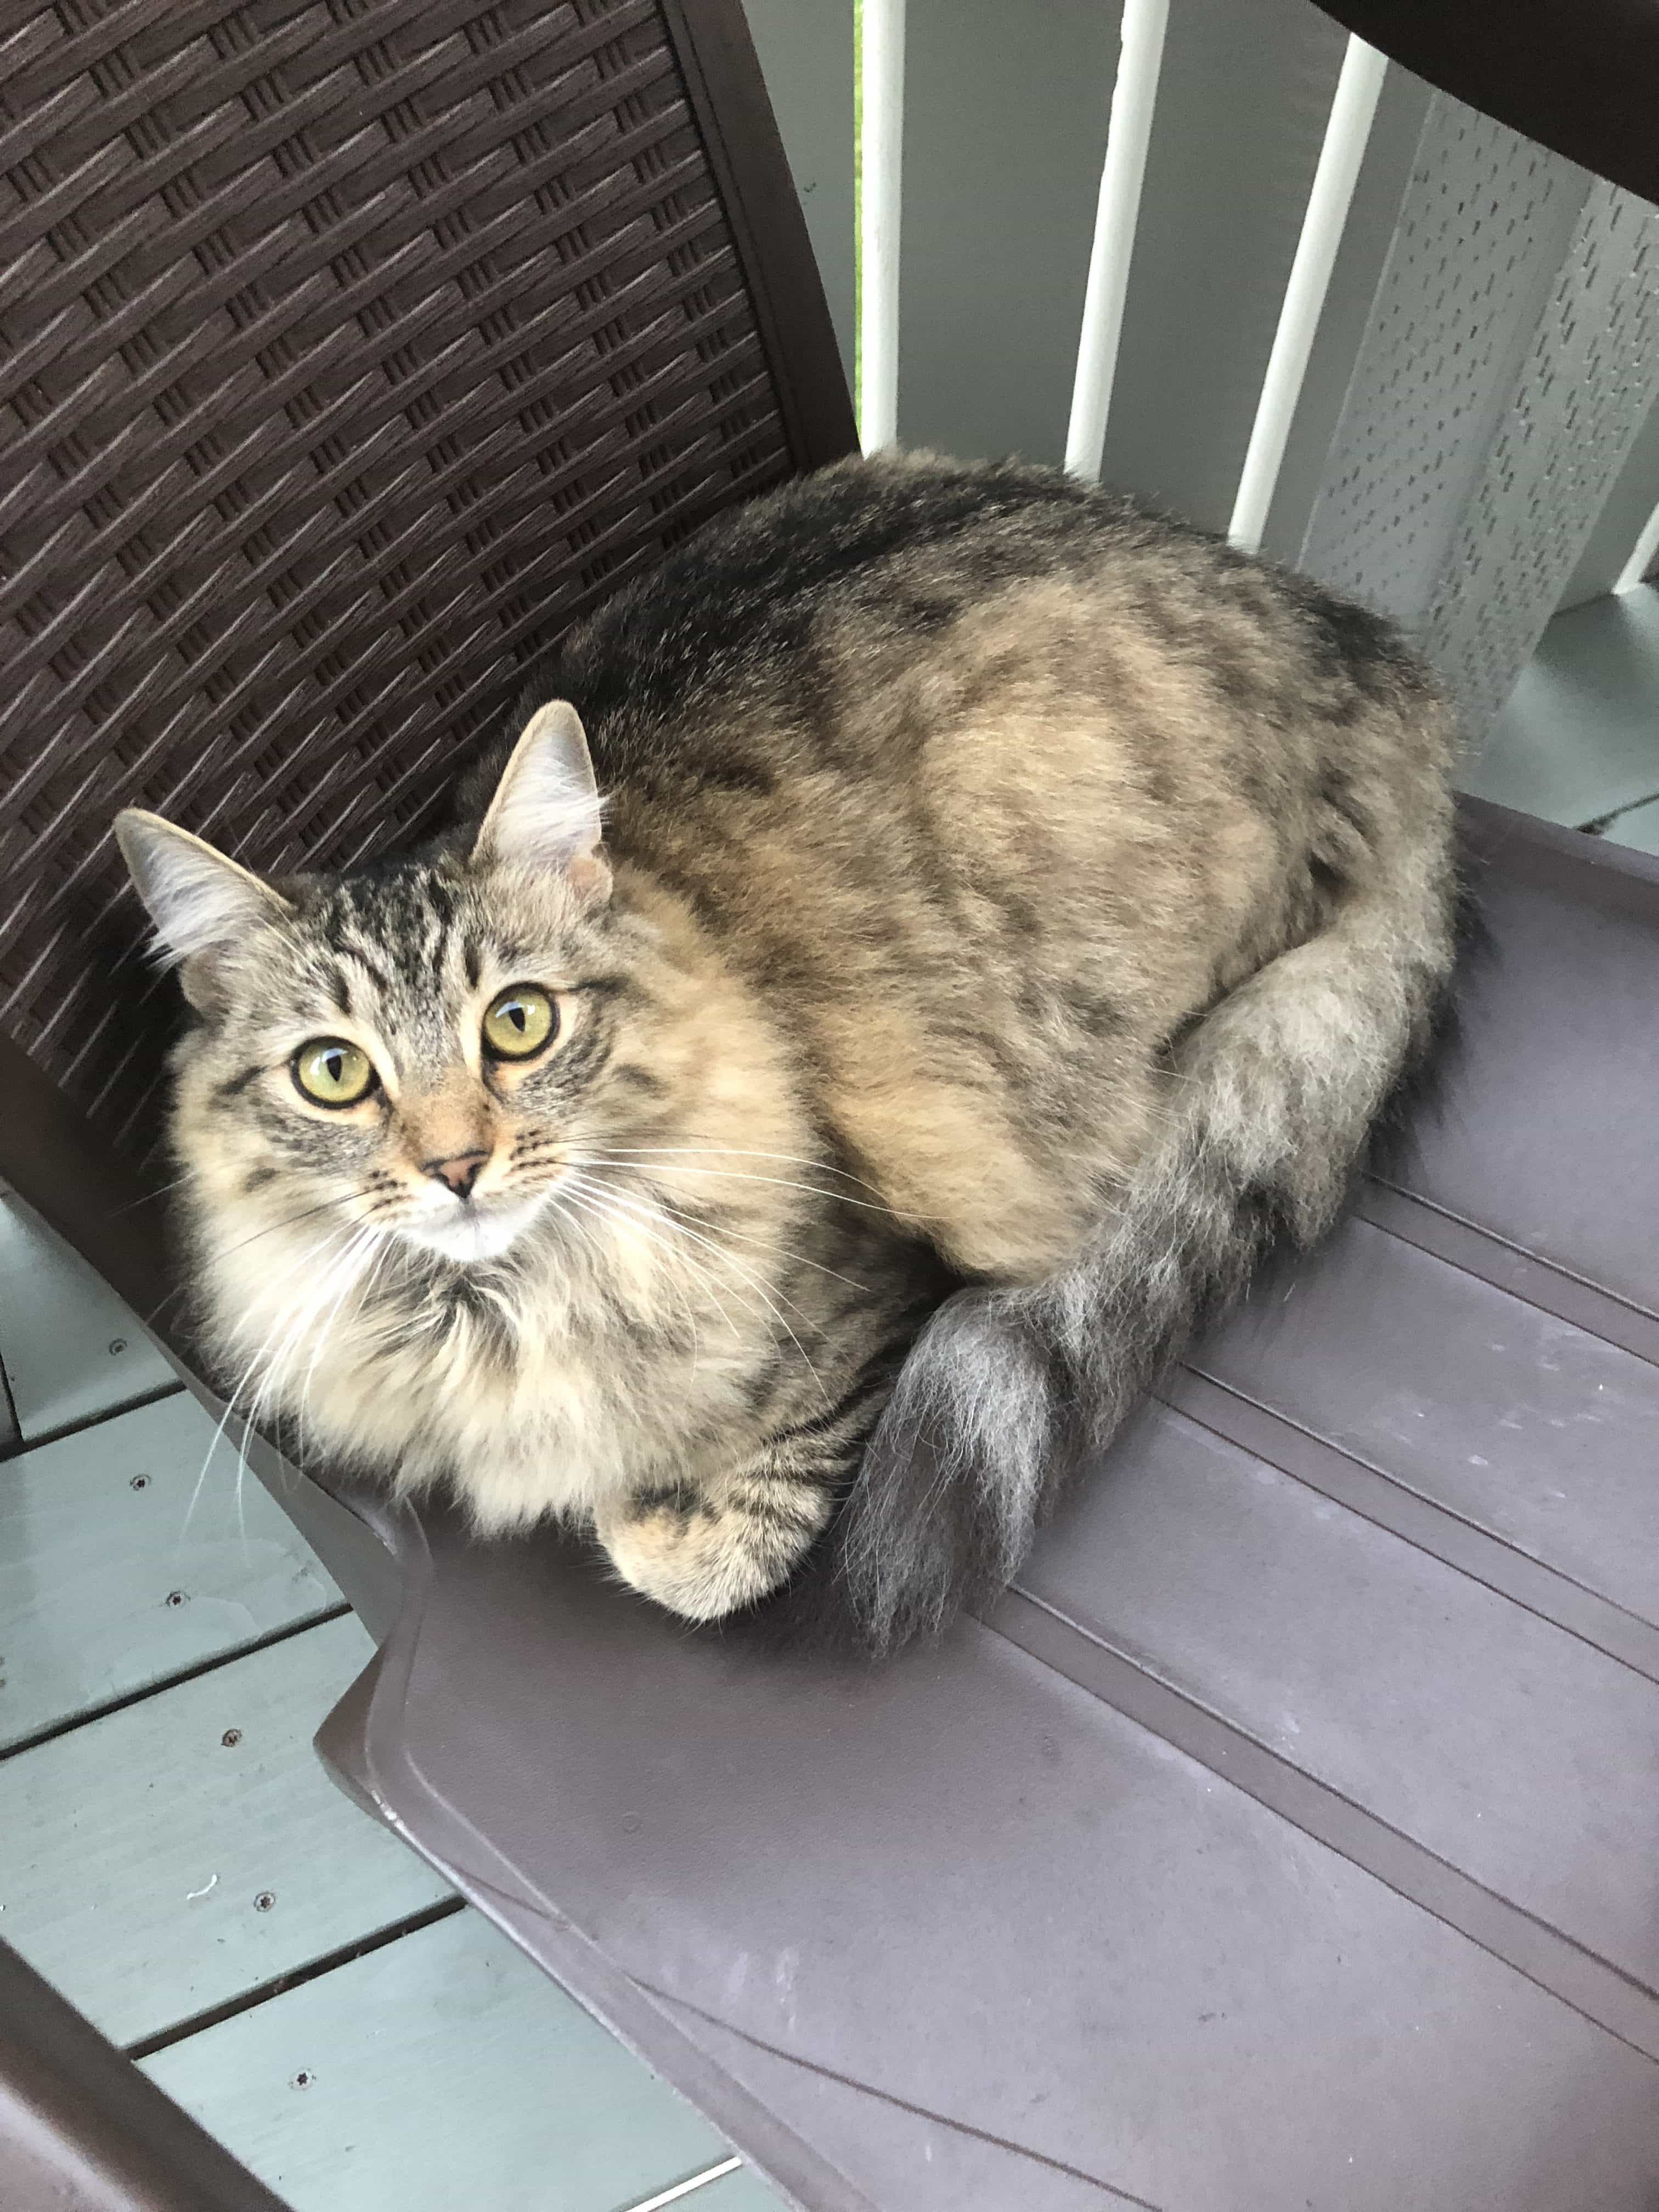 Arya my siberian cat in a plastic chair on our deck.